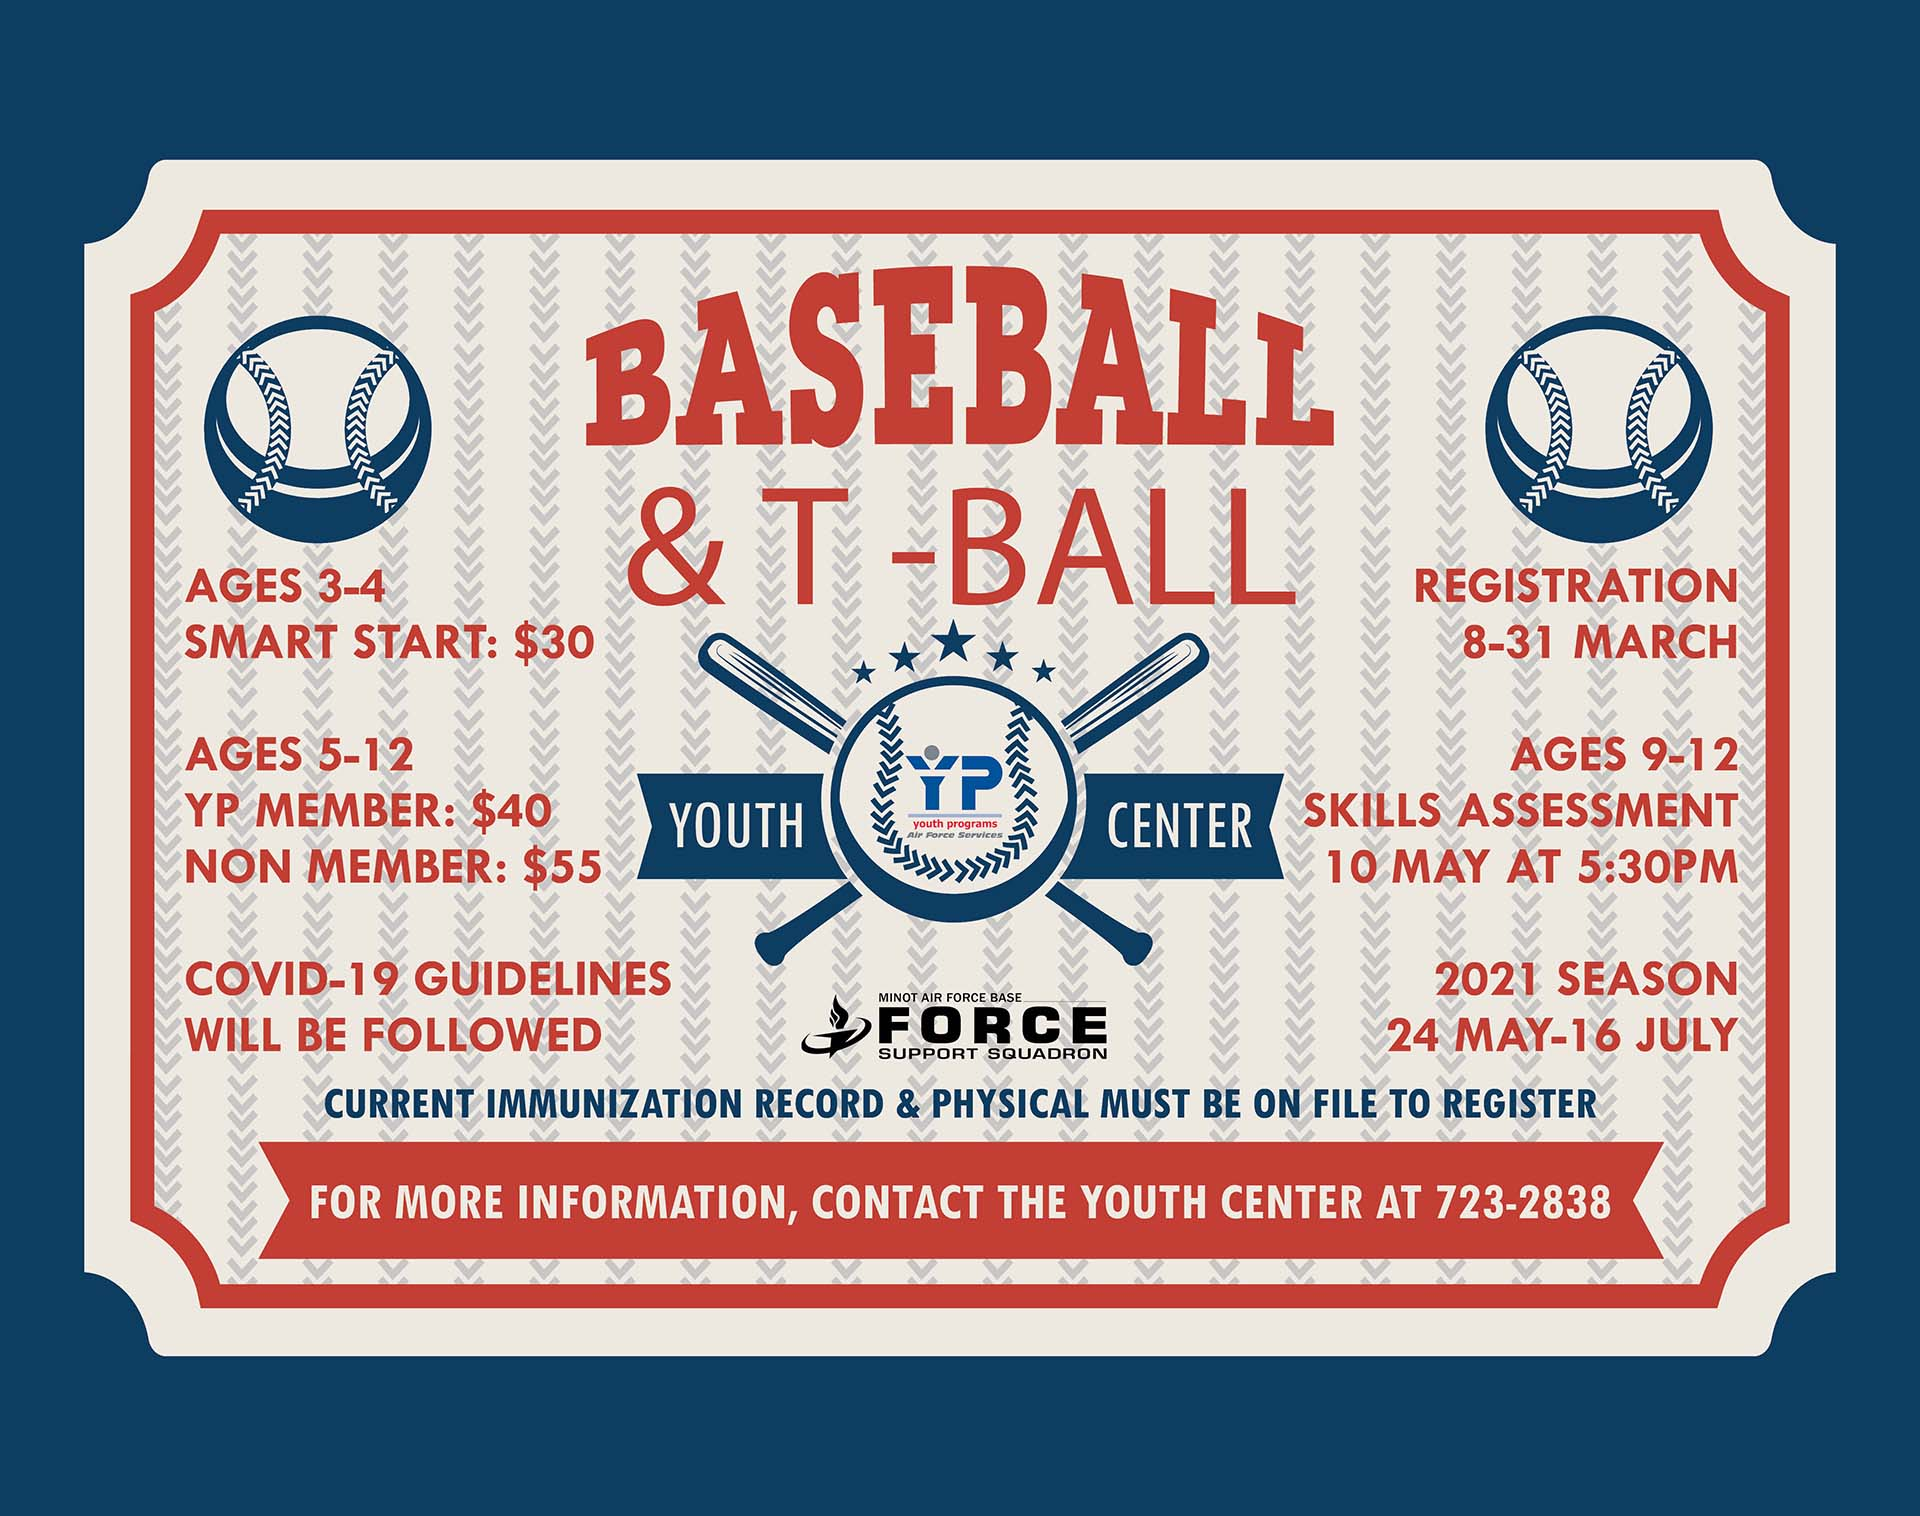 Registration Closes: Youth Baseball & T-Ball